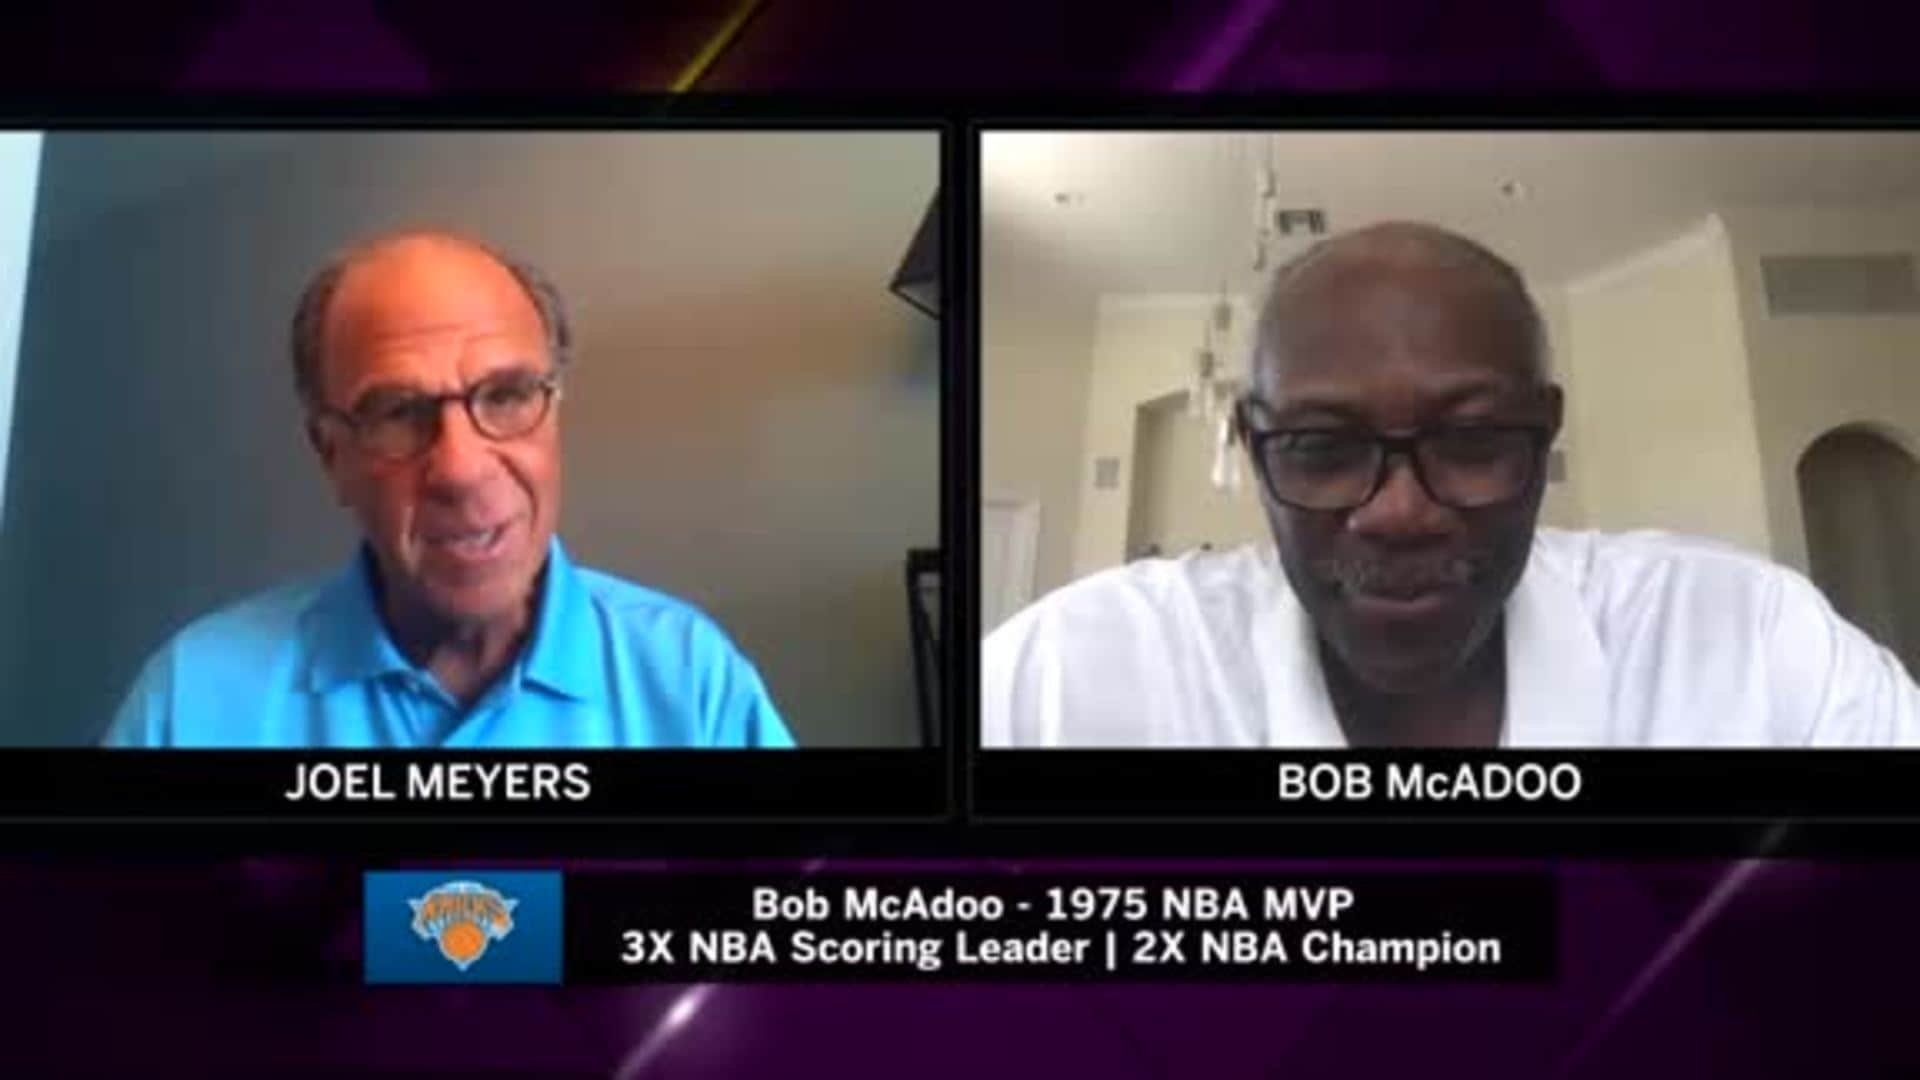 NBA legend Bob McAdoo remembers Pete Maravich's 68-point game